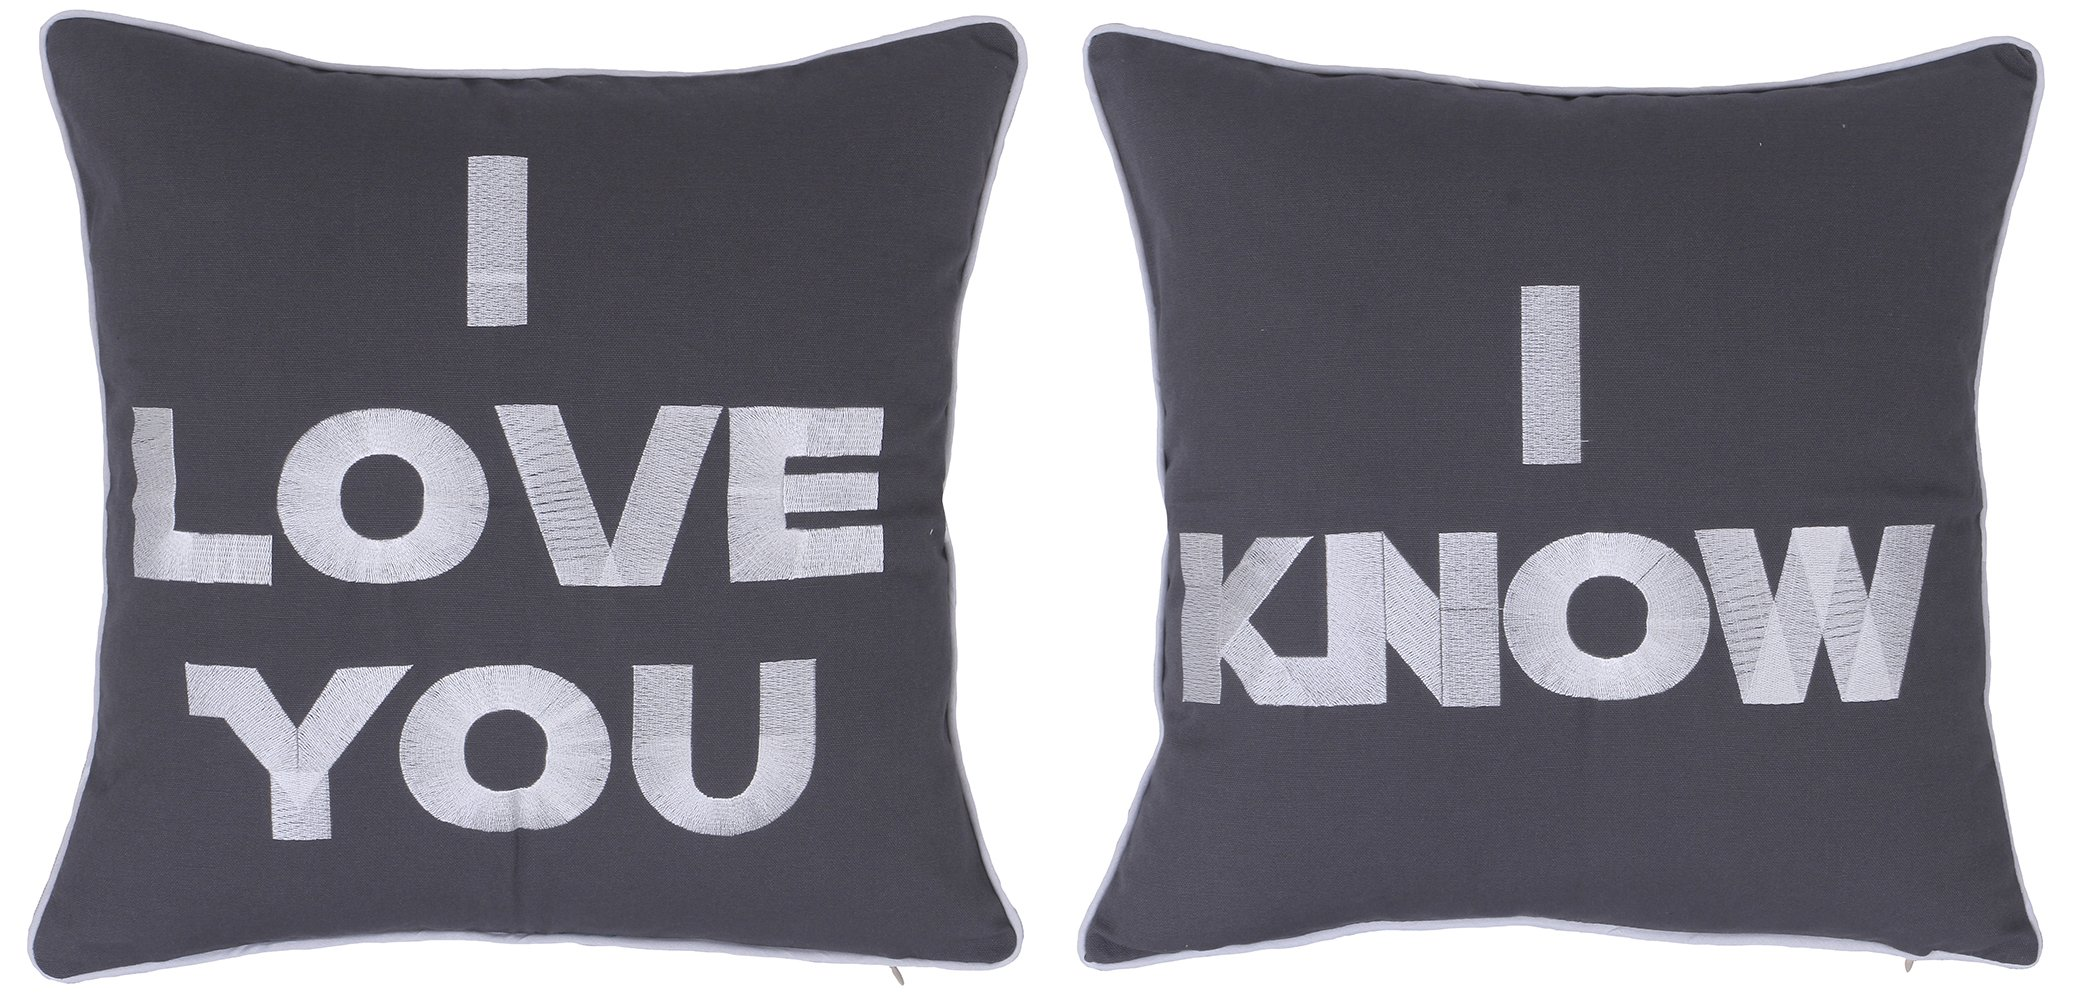 DecorHouzz I Love u I know Set of 2 Pcs Embroidered Pillow Case Pillow Cover Decorative Pillow Cushion Cover 18x18 Gift for Couple Wedding Anniversary (Charcoal)